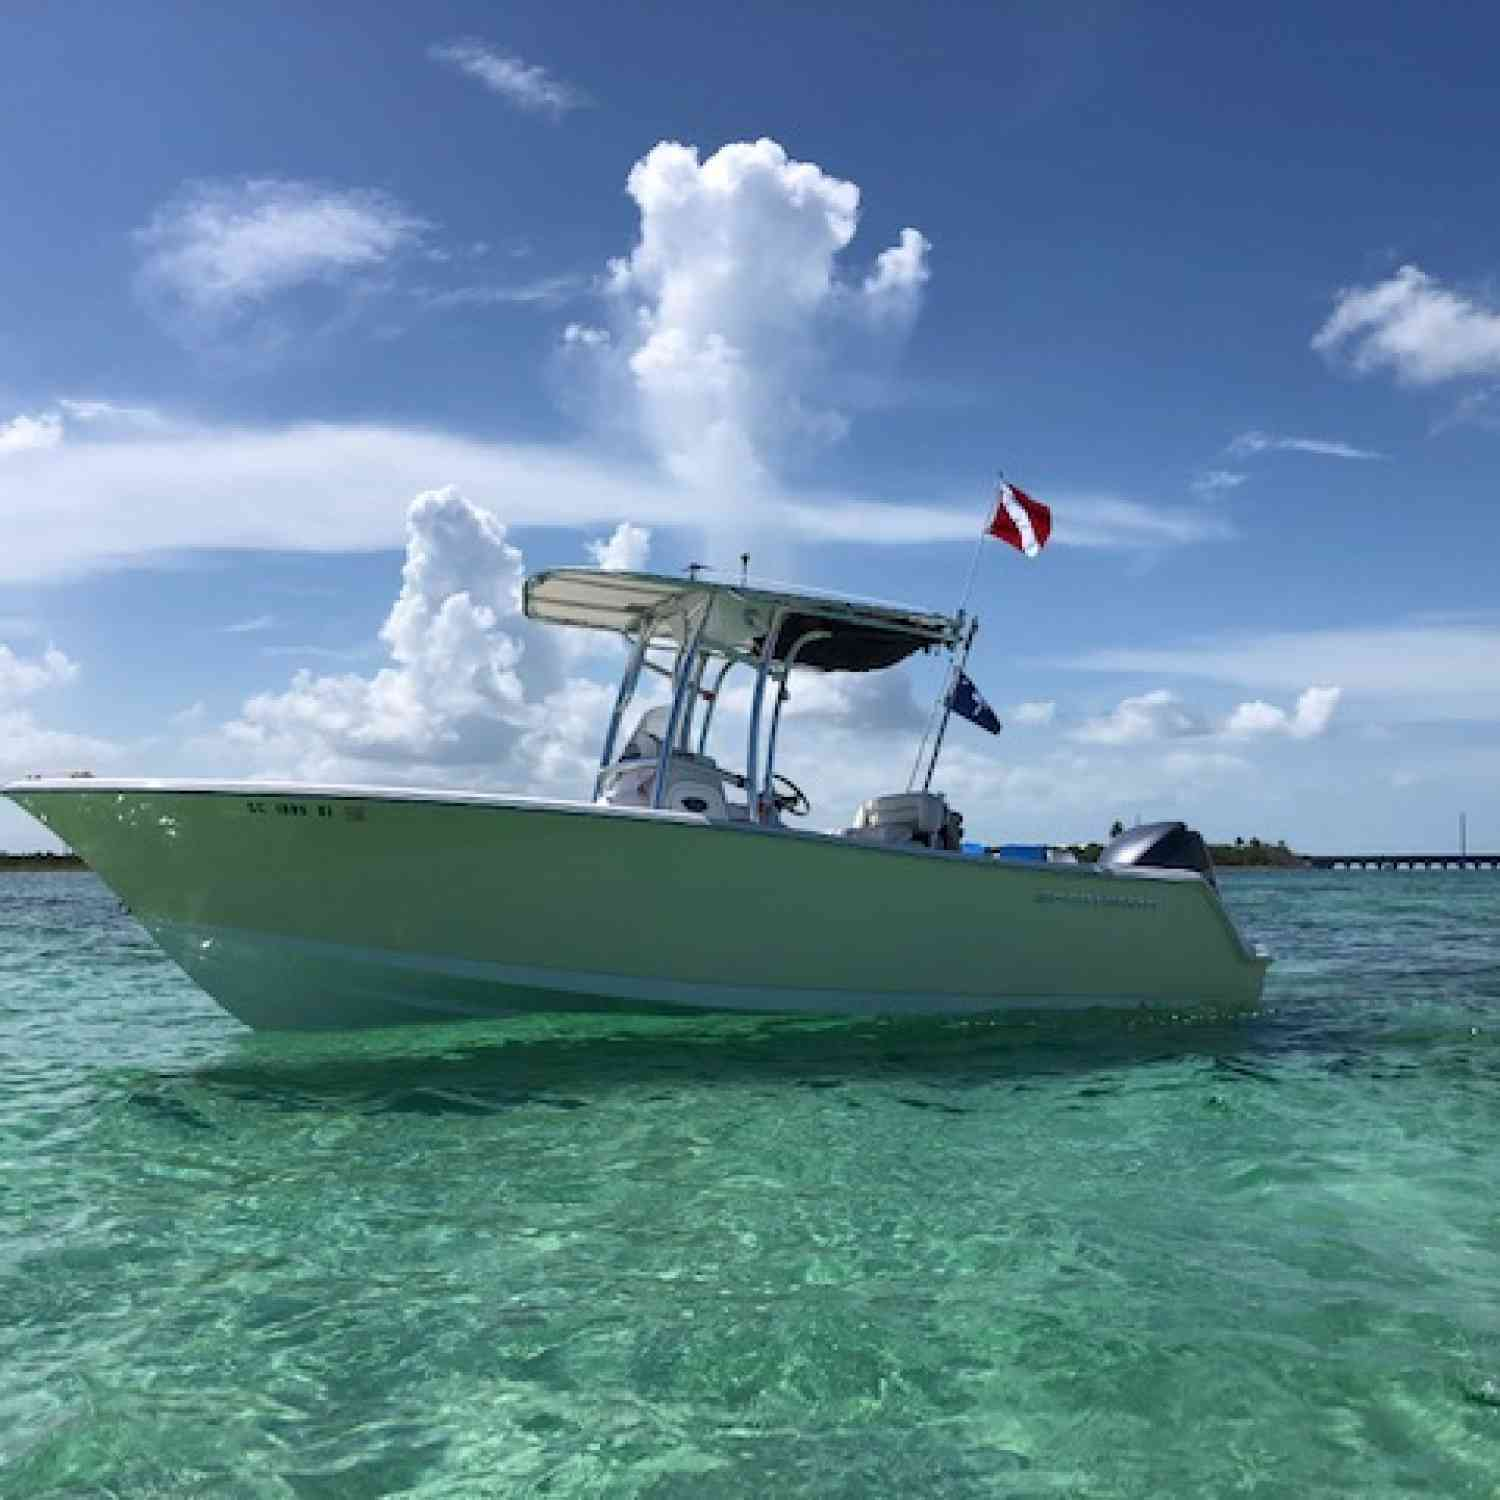 Title: Sportsman in the Keys - On board their Sportsman Heritage 231 Center Console - Location: Marathon, Florida. Participating in the Photo Contest #SportsmanNovember2019